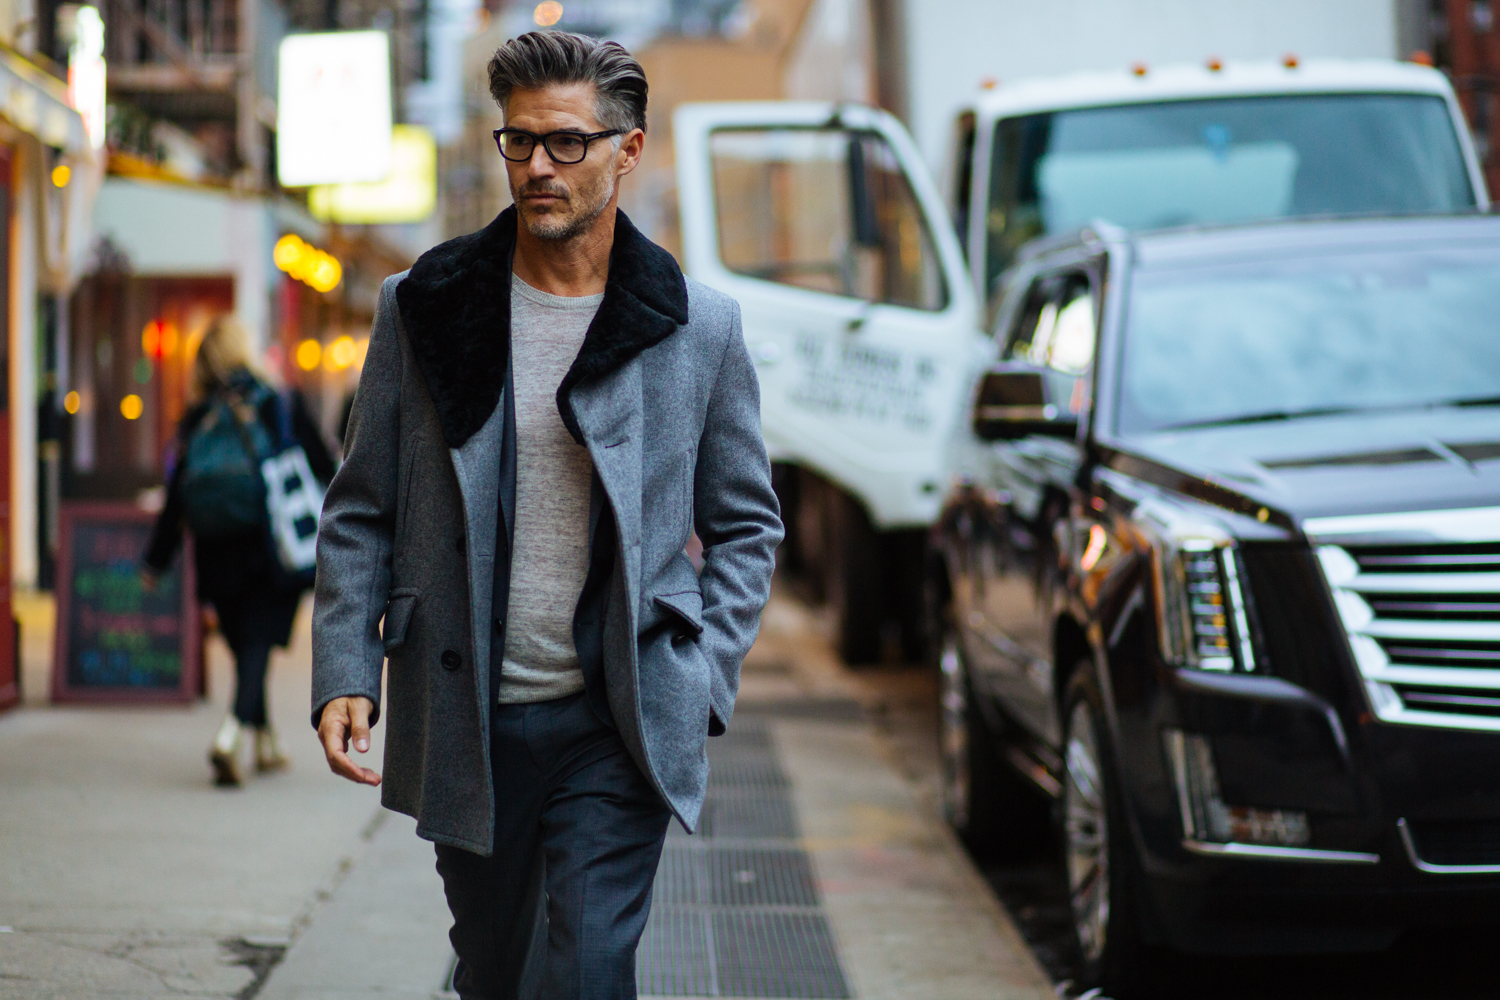 Wool Peacoat by Todd Snyder Ny x Private White VC, Suit and Sweater by Todd Snyder NY